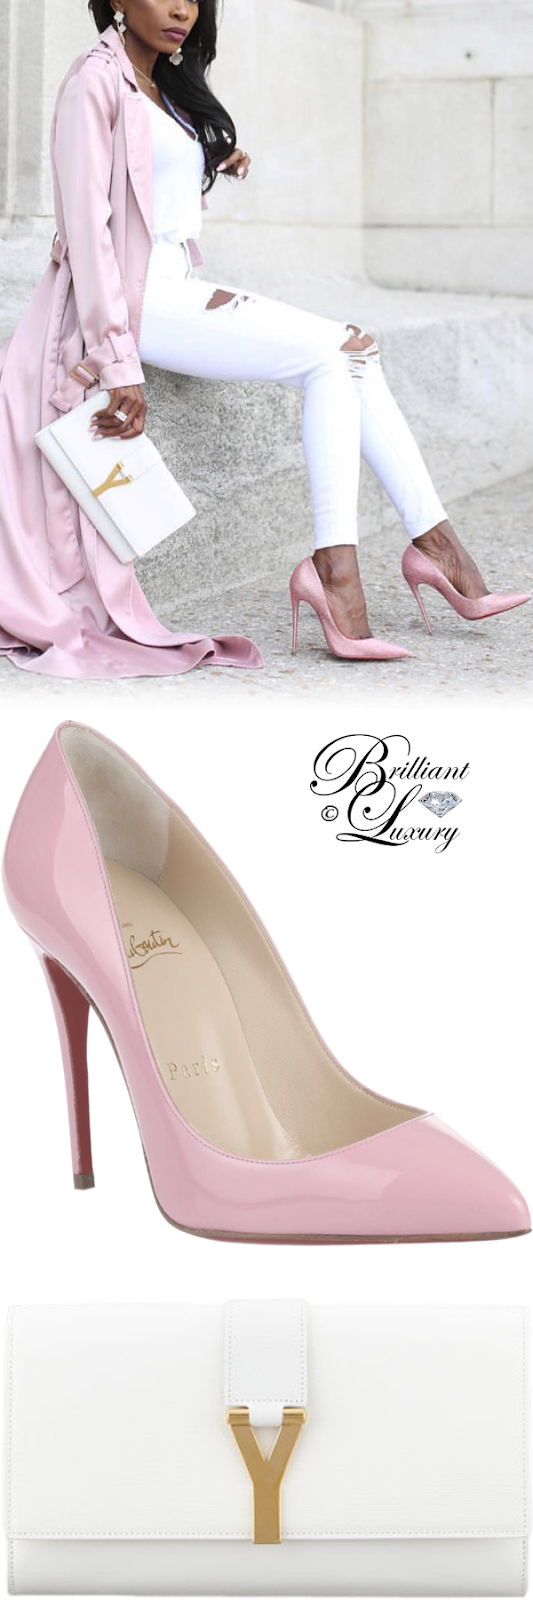 Brilliant Luxury ♦ Saint Laurent Y clutch bag #white and Christian Louboutin Pigalle Follies pumps #pink #streetstyle